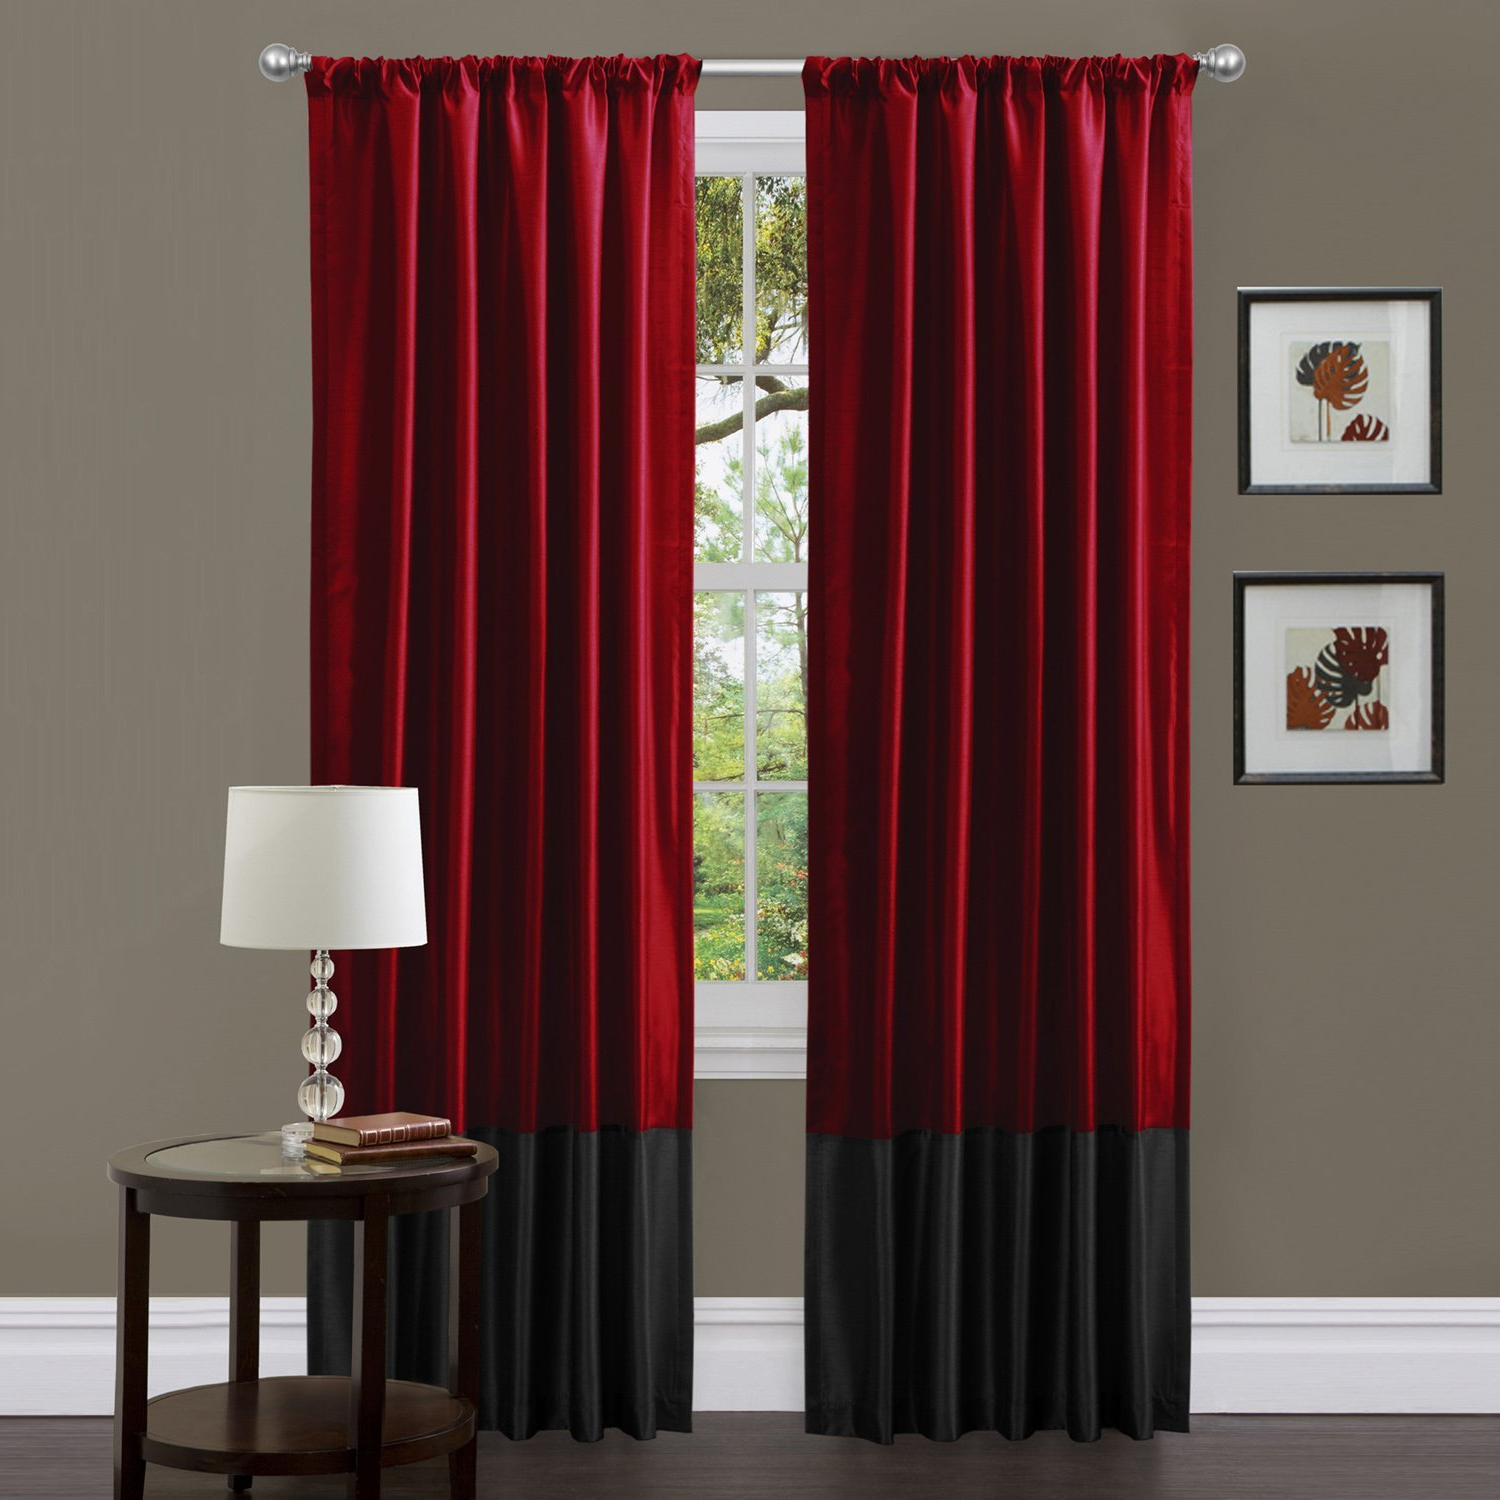 Warm Burgundy Curtains For Living Room — Office Pdx Kitchen With Best And Newest Kitchen Burgundy/white Curtain Sets (View 16 of 20)